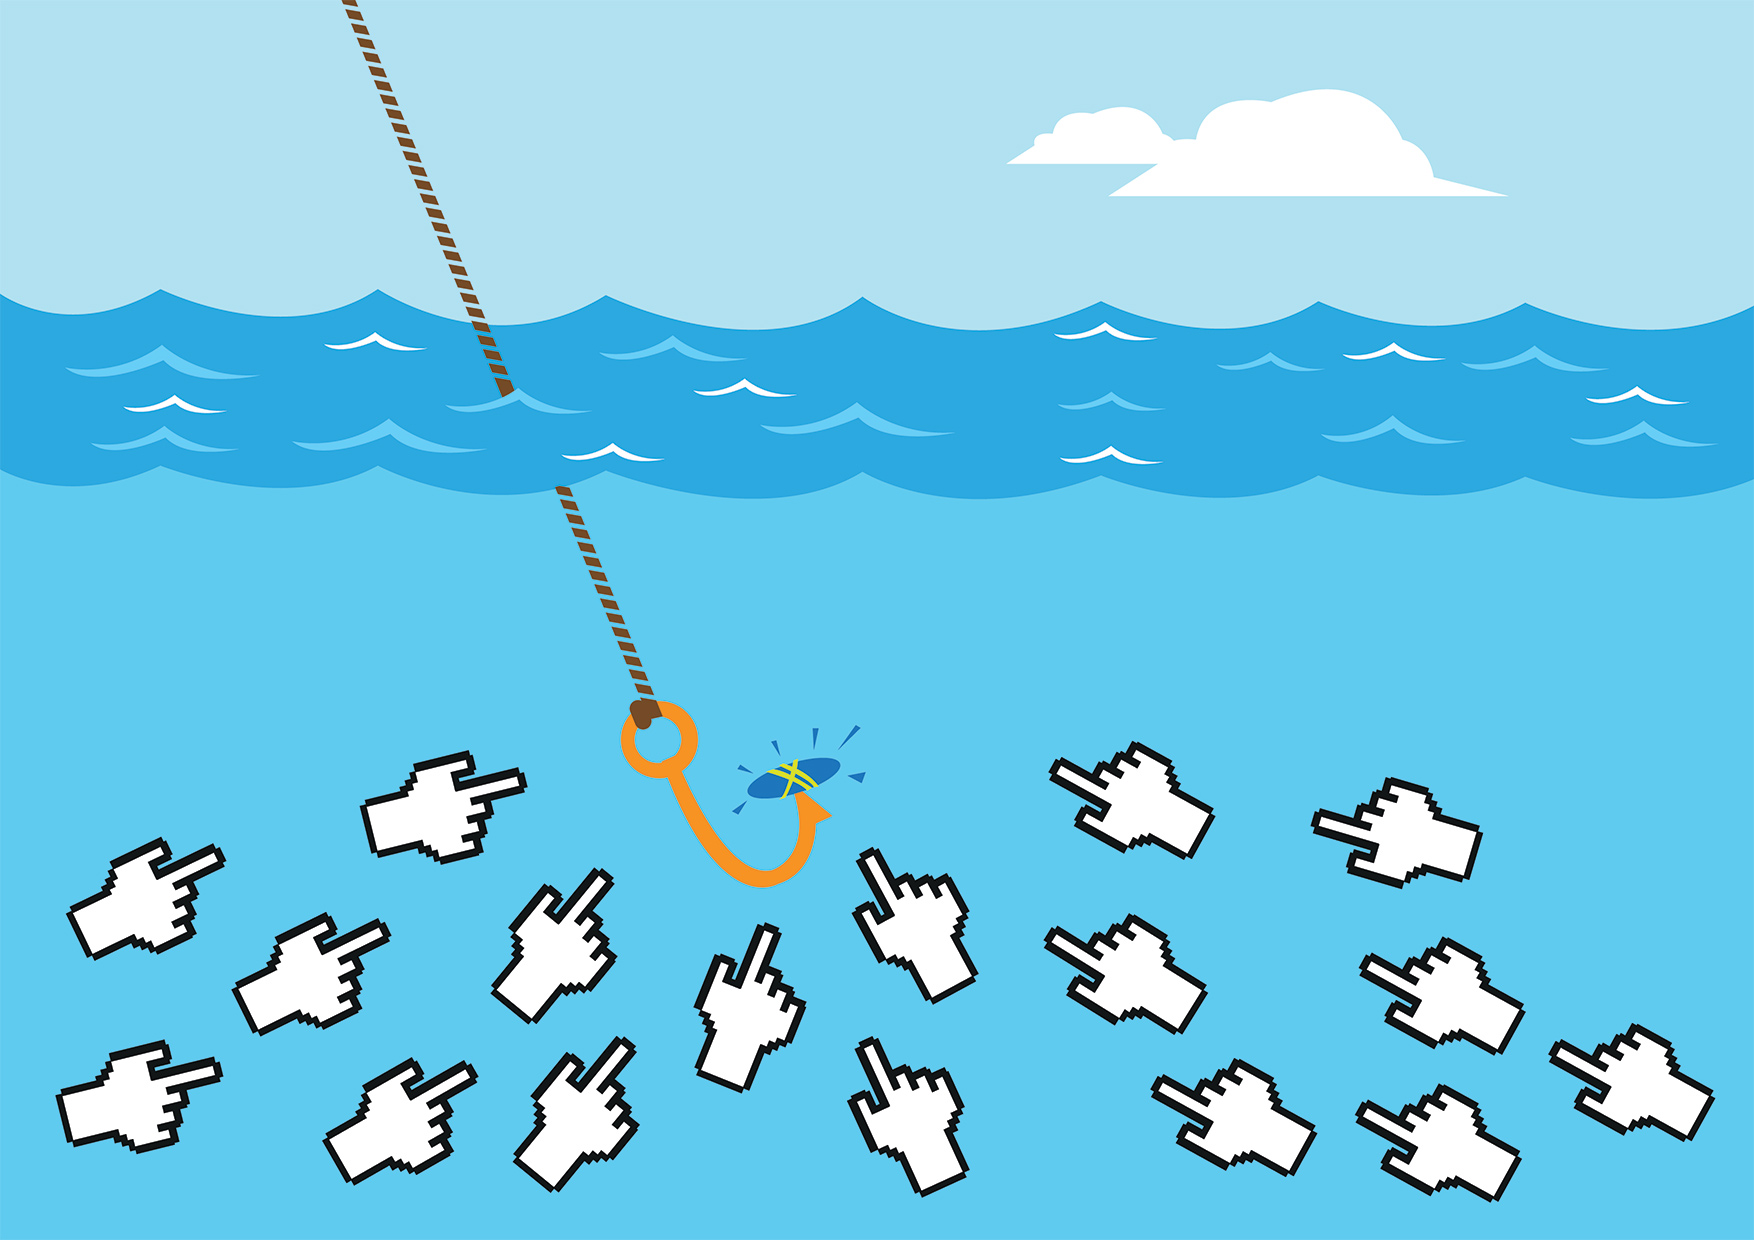 Depicting clickbait content. Fishing hook drawing mouse cursors.